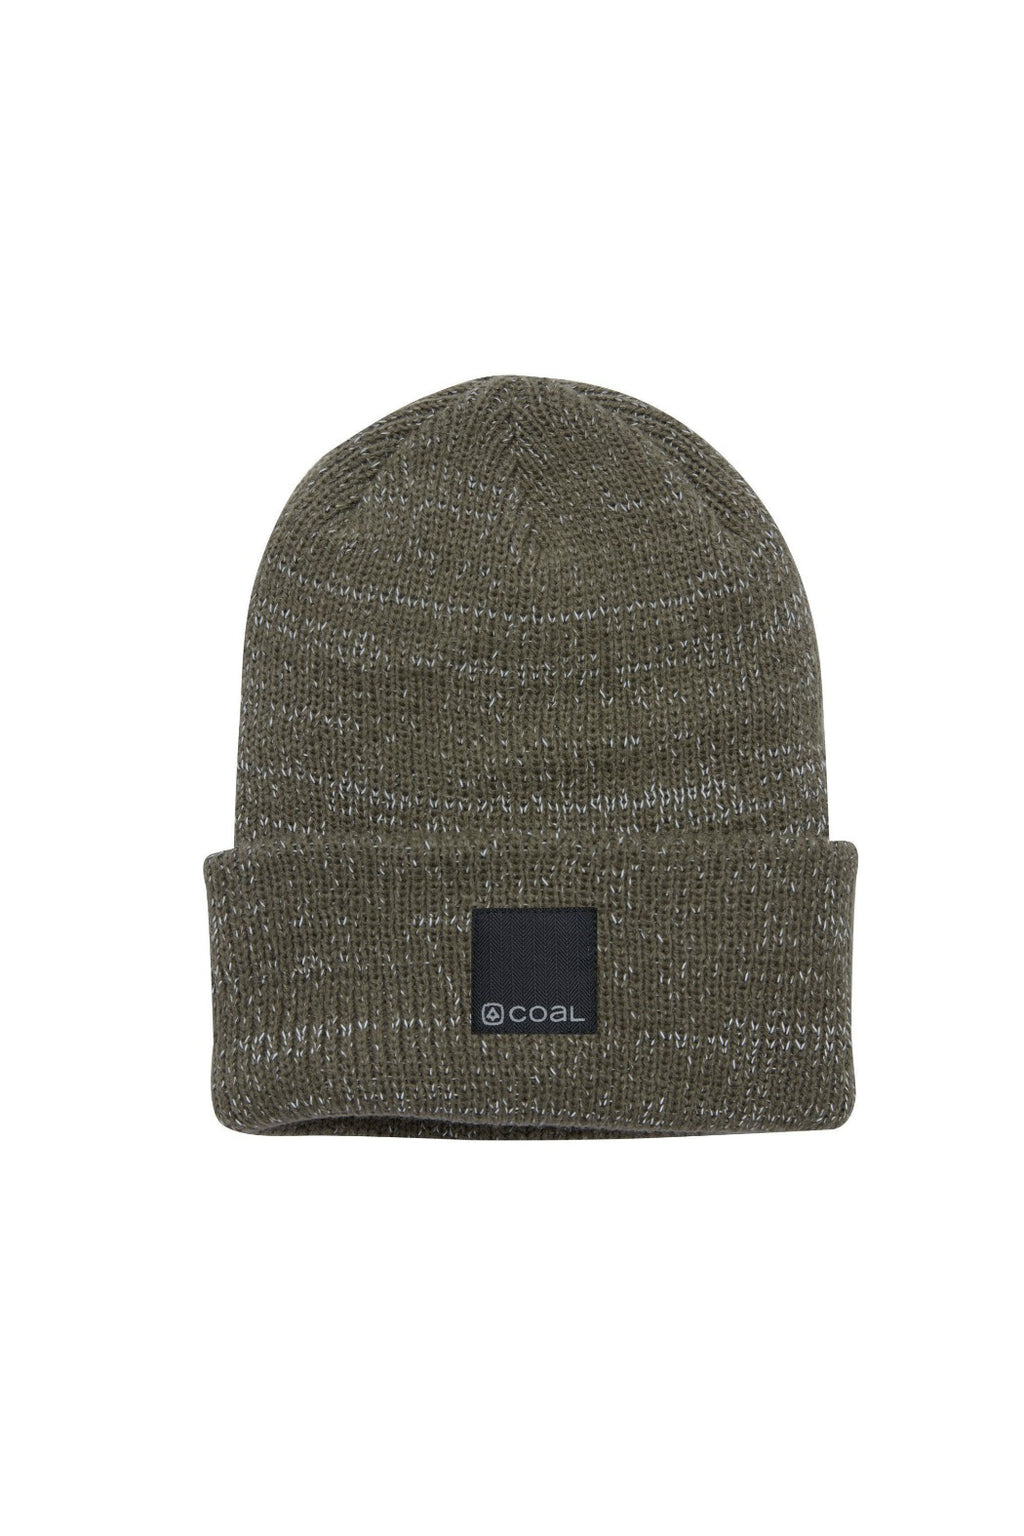 Coal Burlington Reflective Beanie - Olive